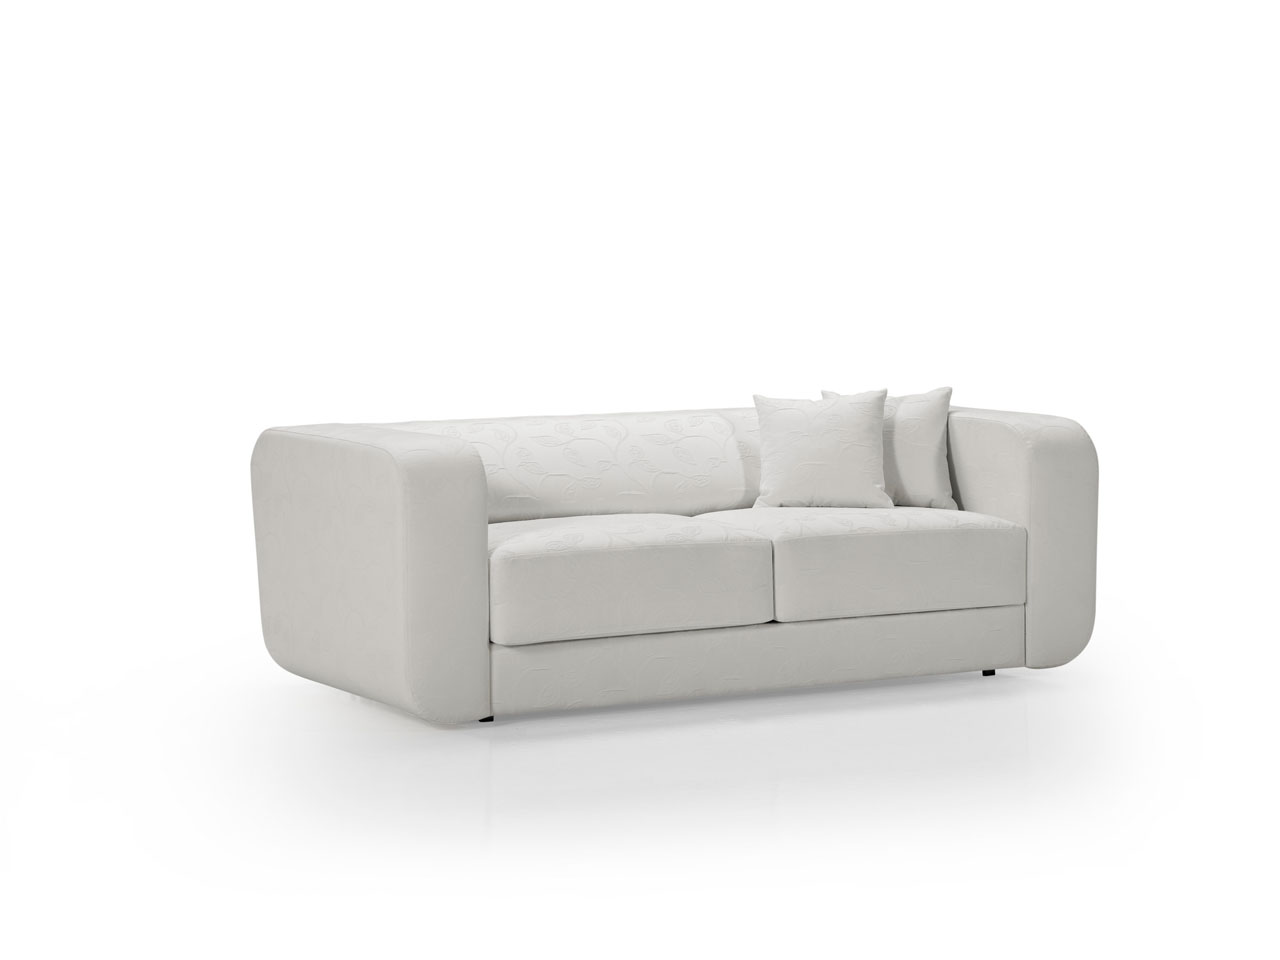 Sofas de diseo baratos luxury modern home furniture for Sofas nuevos baratos